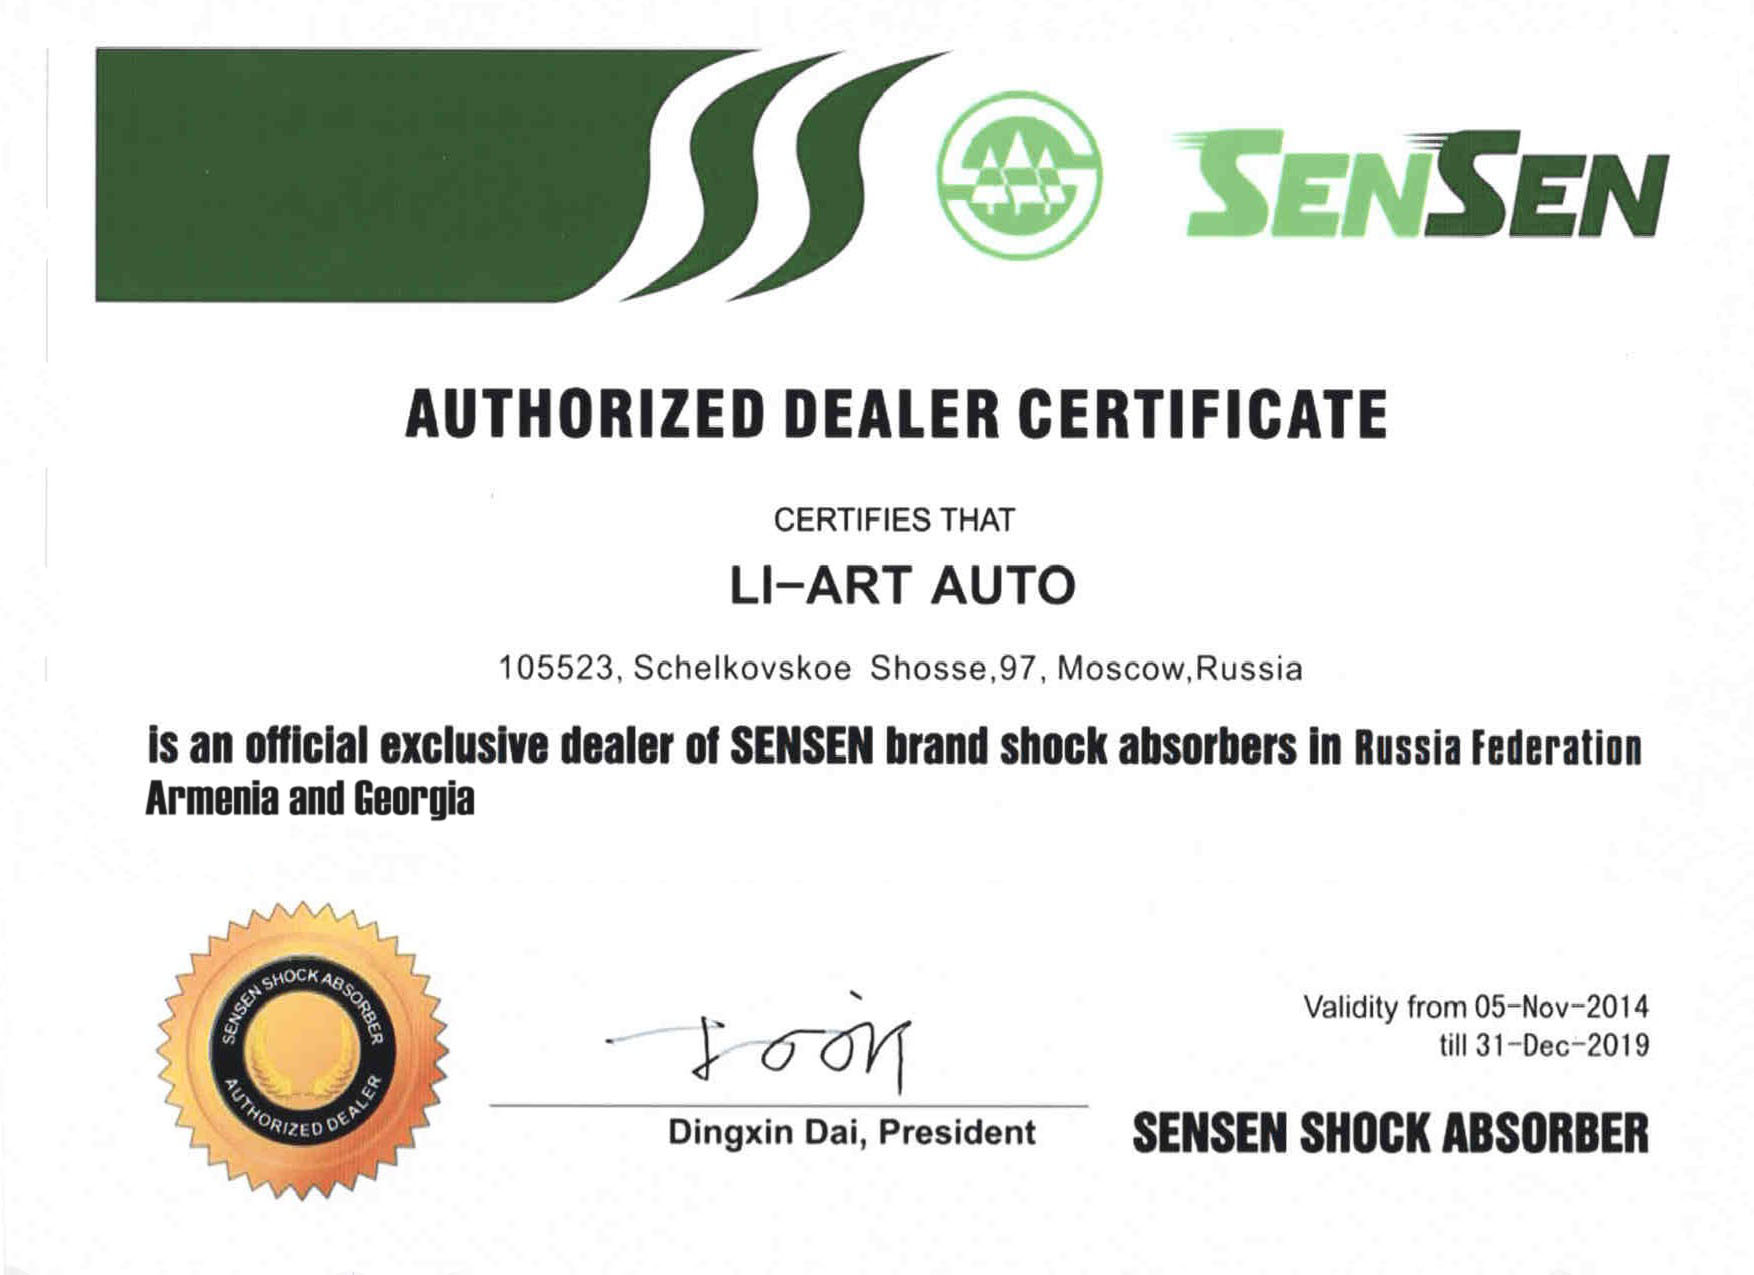 Updated SENSEN dealer